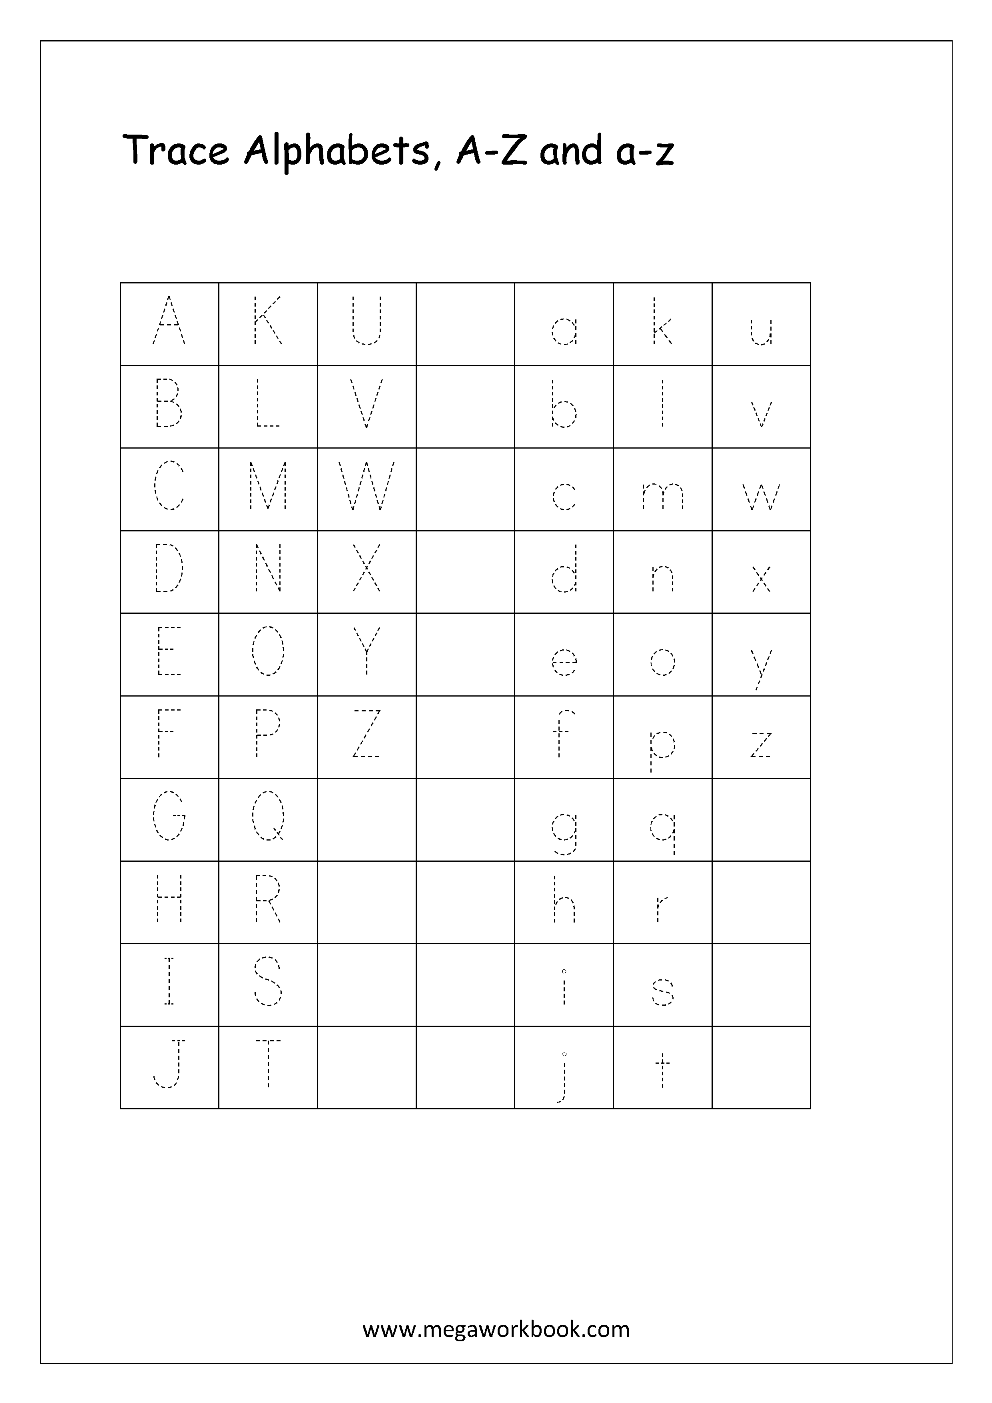 Free english worksheets alphabet tracing small letters letter english worksheet alphabet tracing small and capital letters a z a z spiritdancerdesigns Choice Image